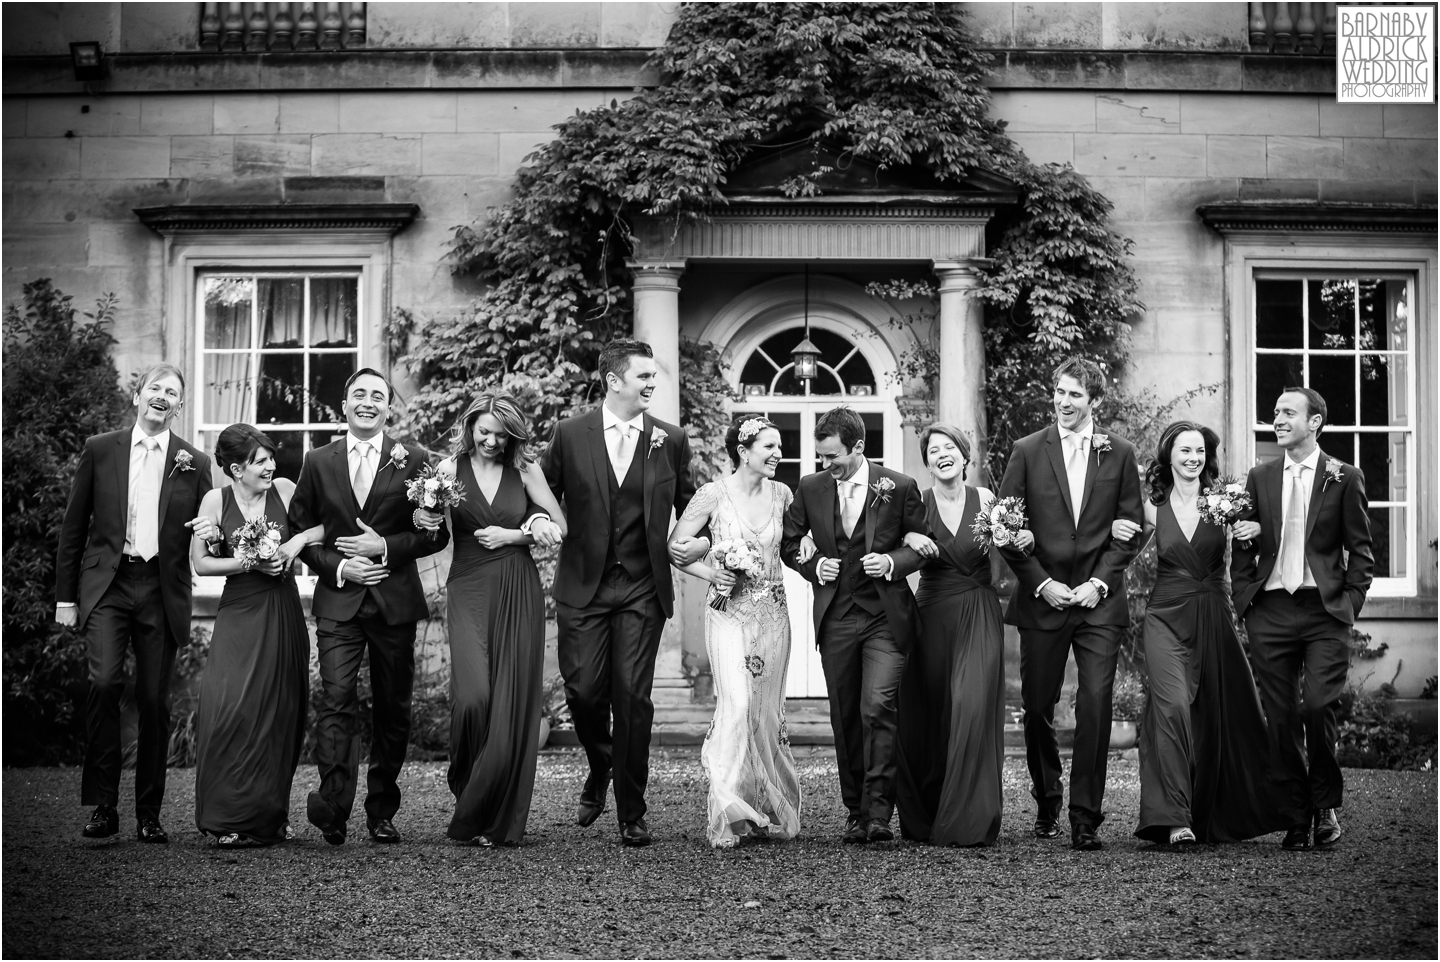 A fun photograph of the wedding party outside Middleton Lodge in North Yorkshire